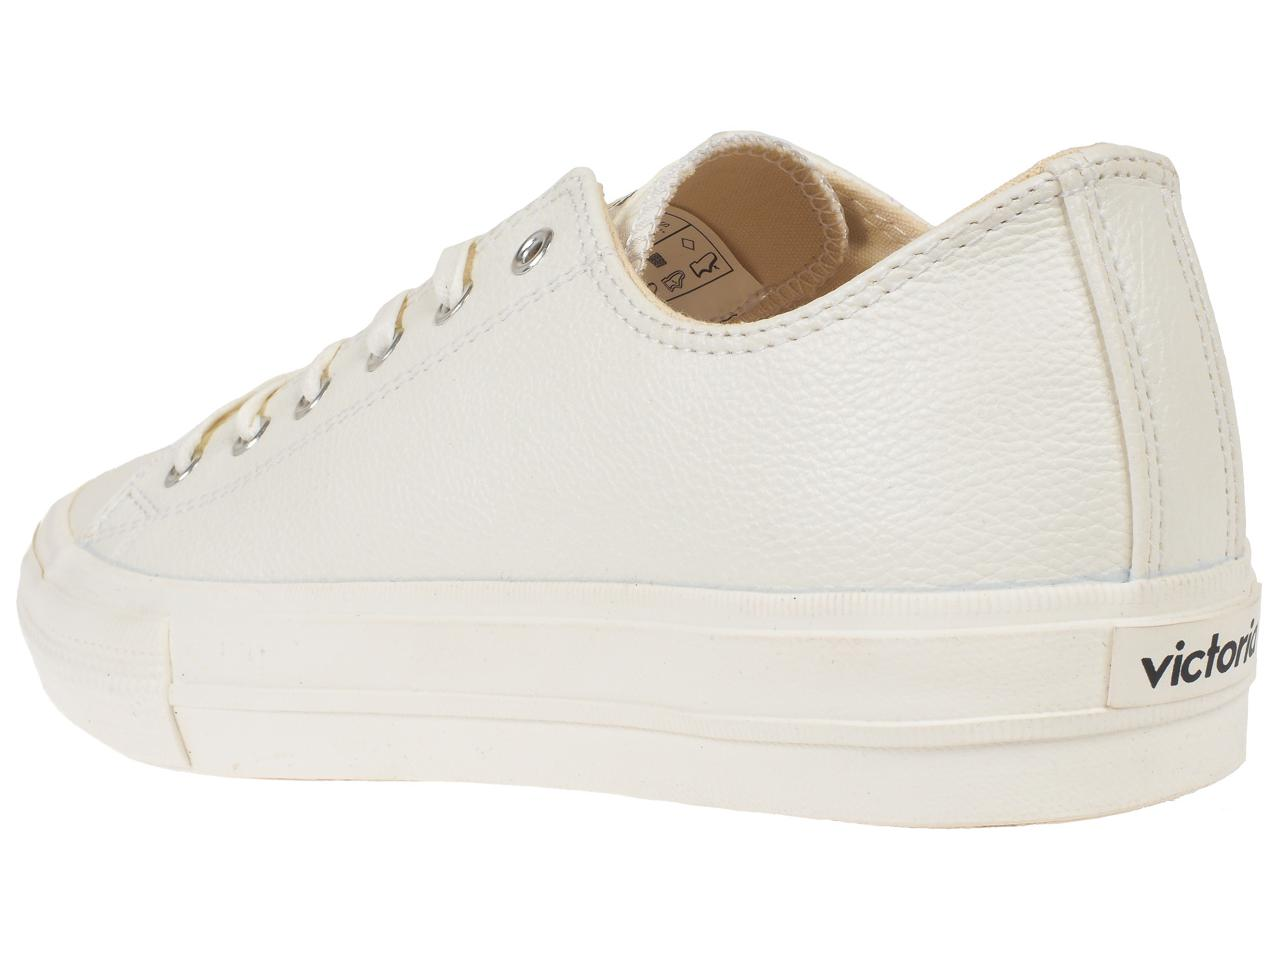 Chaussures-basses-cuir-ou-synthetique-Victoria-Monochrome-blanc-Blanc-75406-Ne